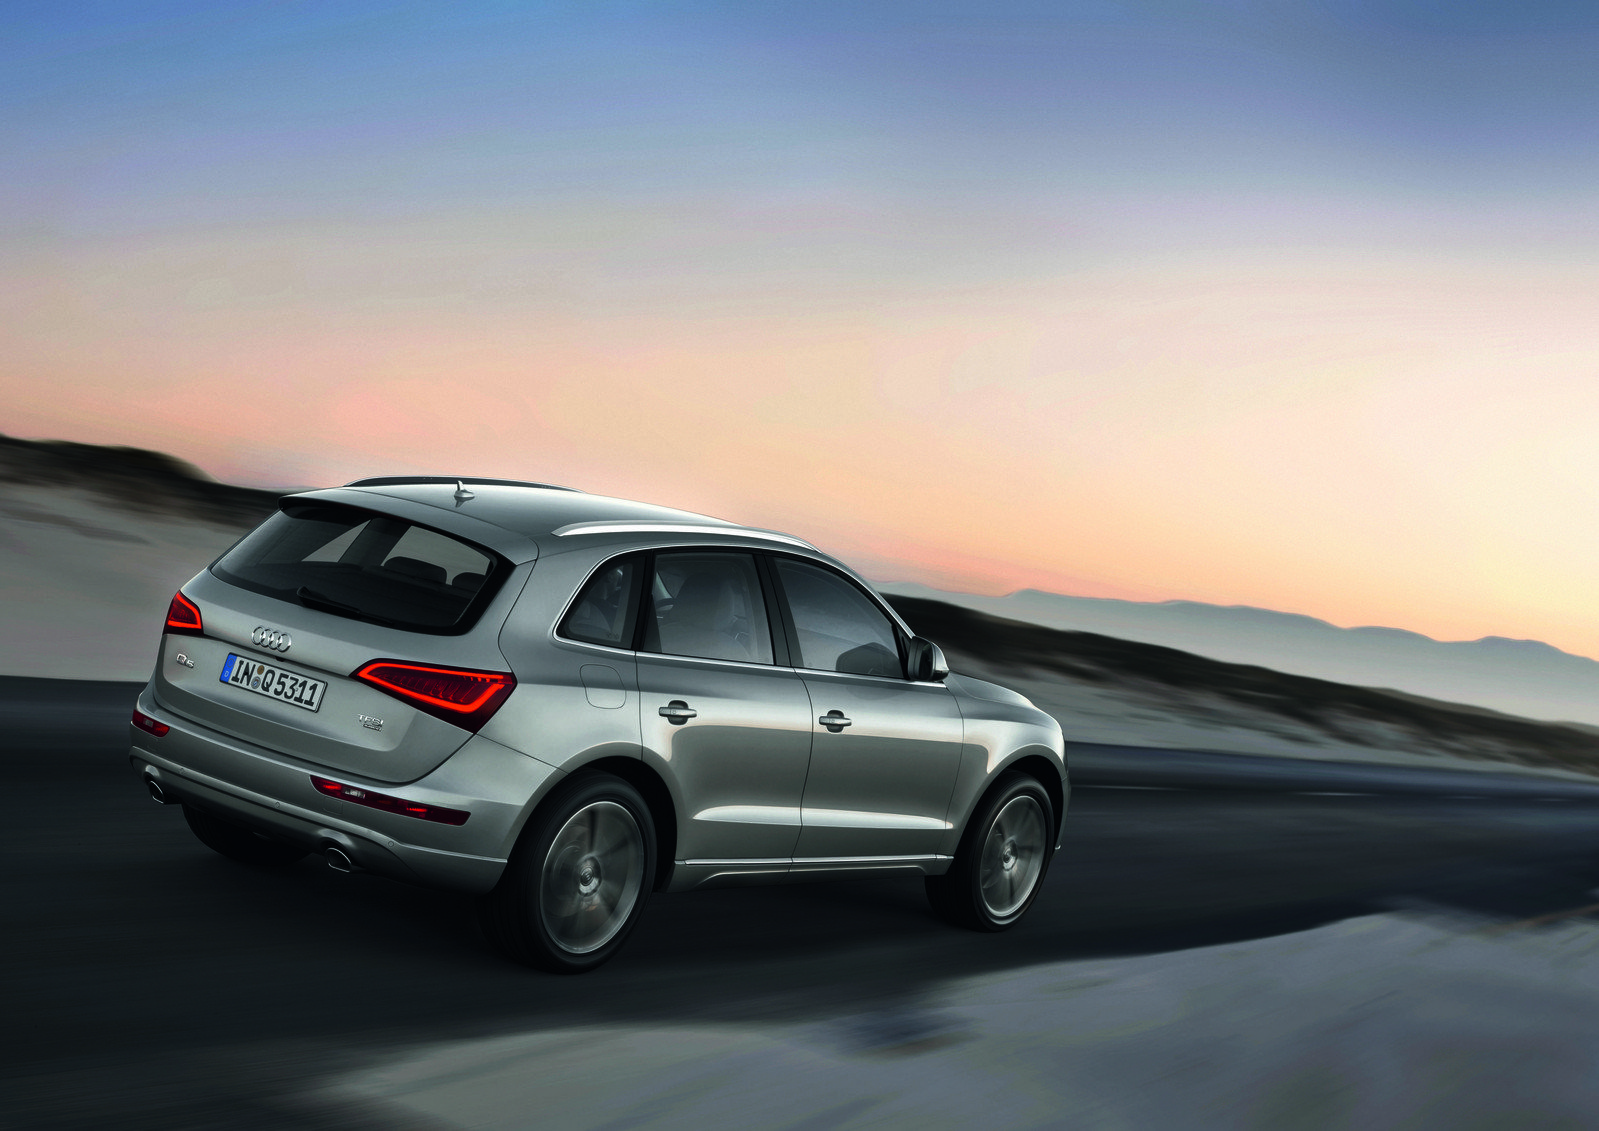 2014 audi q5 picture 511838 car review top speed. Black Bedroom Furniture Sets. Home Design Ideas